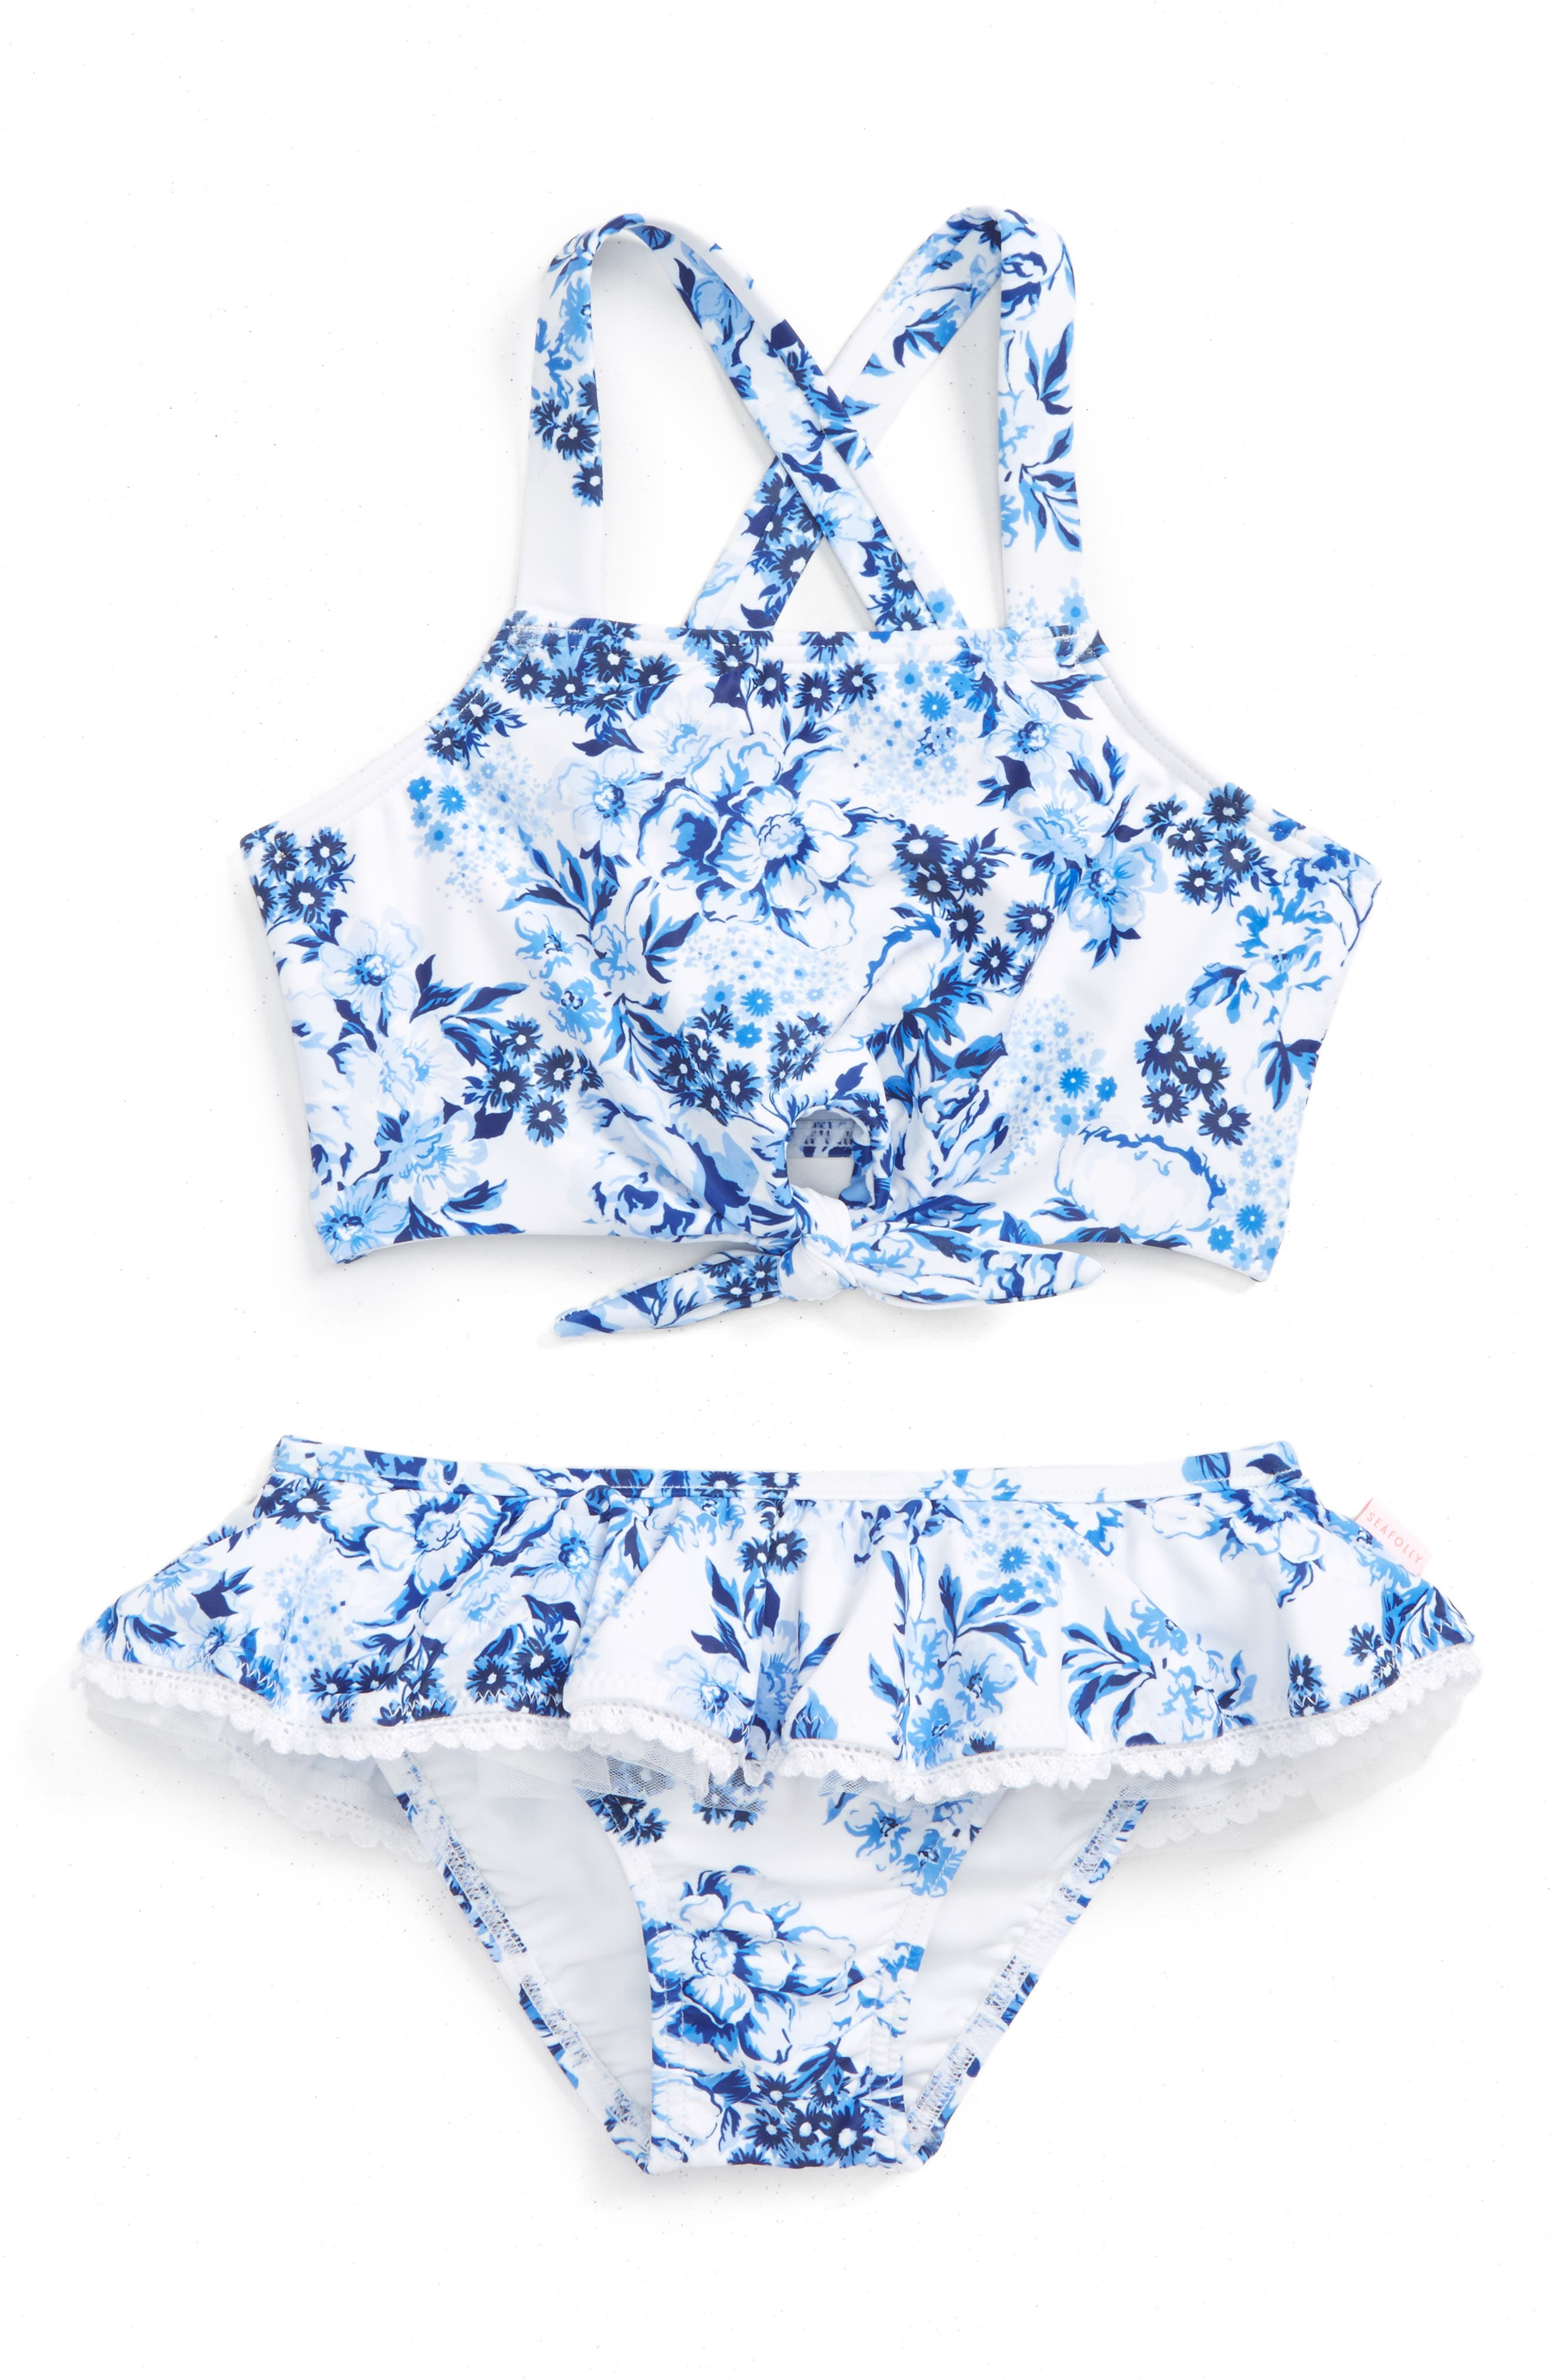 Forget Me Not Tankini Two-Piece Swimsuit,                             Main thumbnail 1, color,                             100